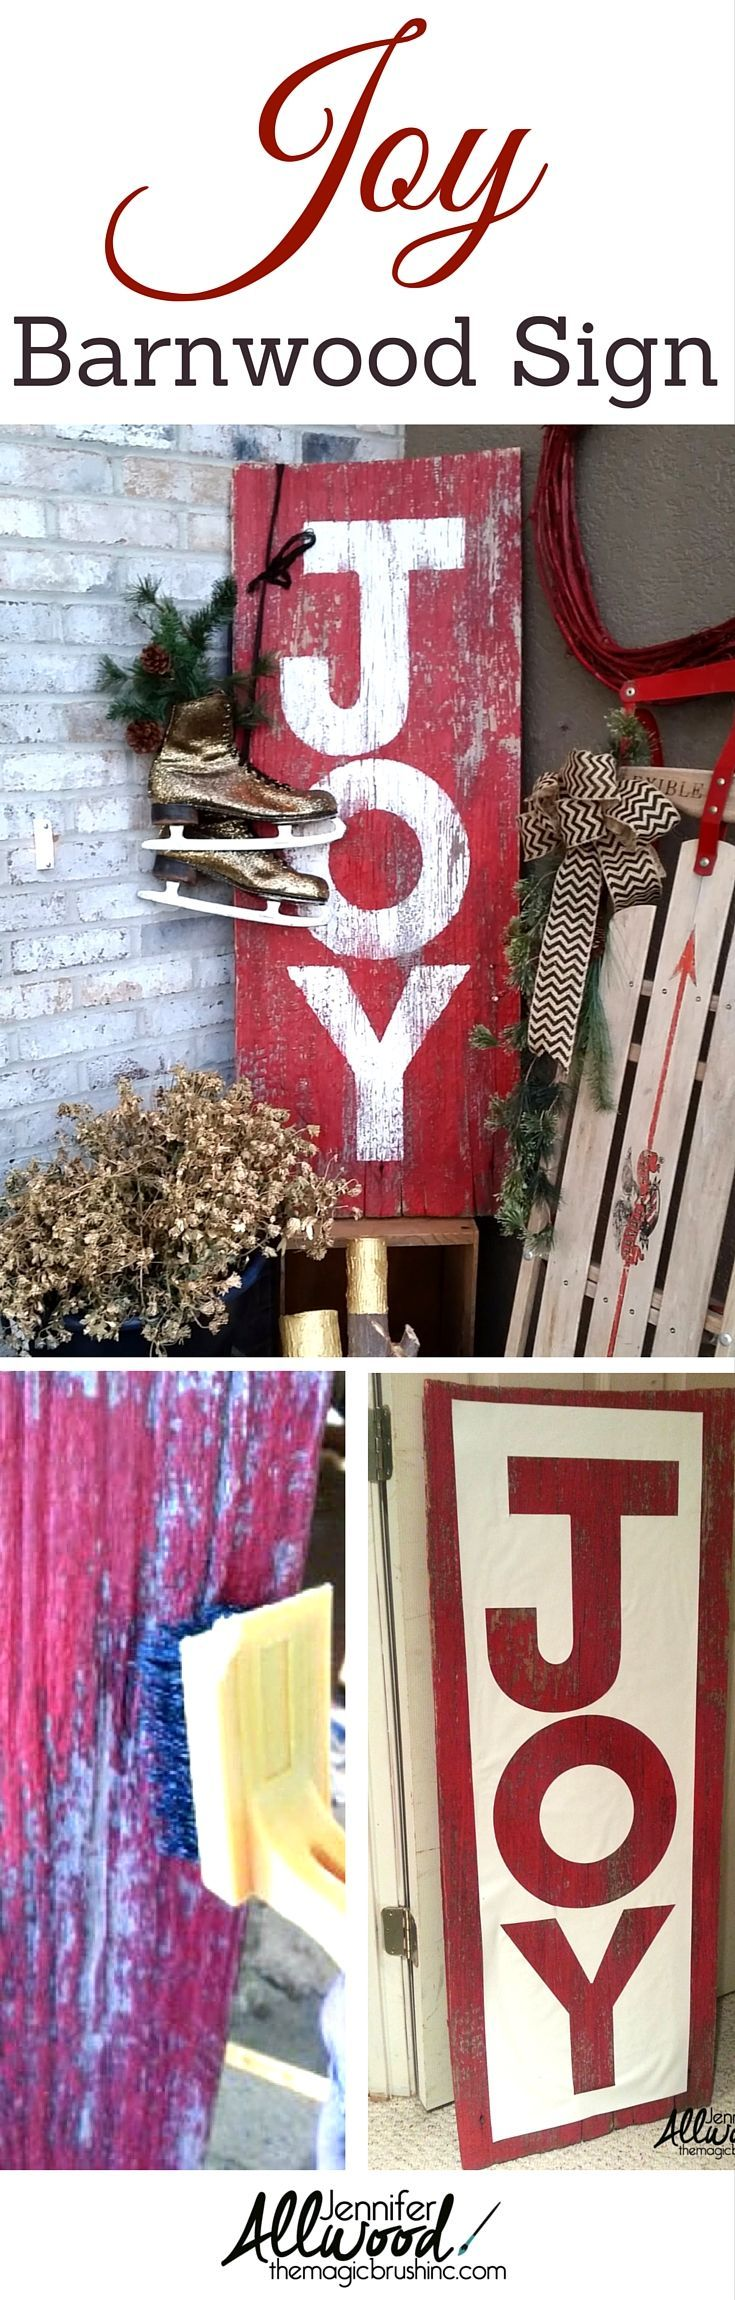 How to's : Here's how I made this cool distressed JOY sign on repurposed barnwood. It's very easy and makes for simple, poignant Christmas décor on your front porch or fireplace mantel. More DIY projects and painting tips at theMagicBrushinc.com